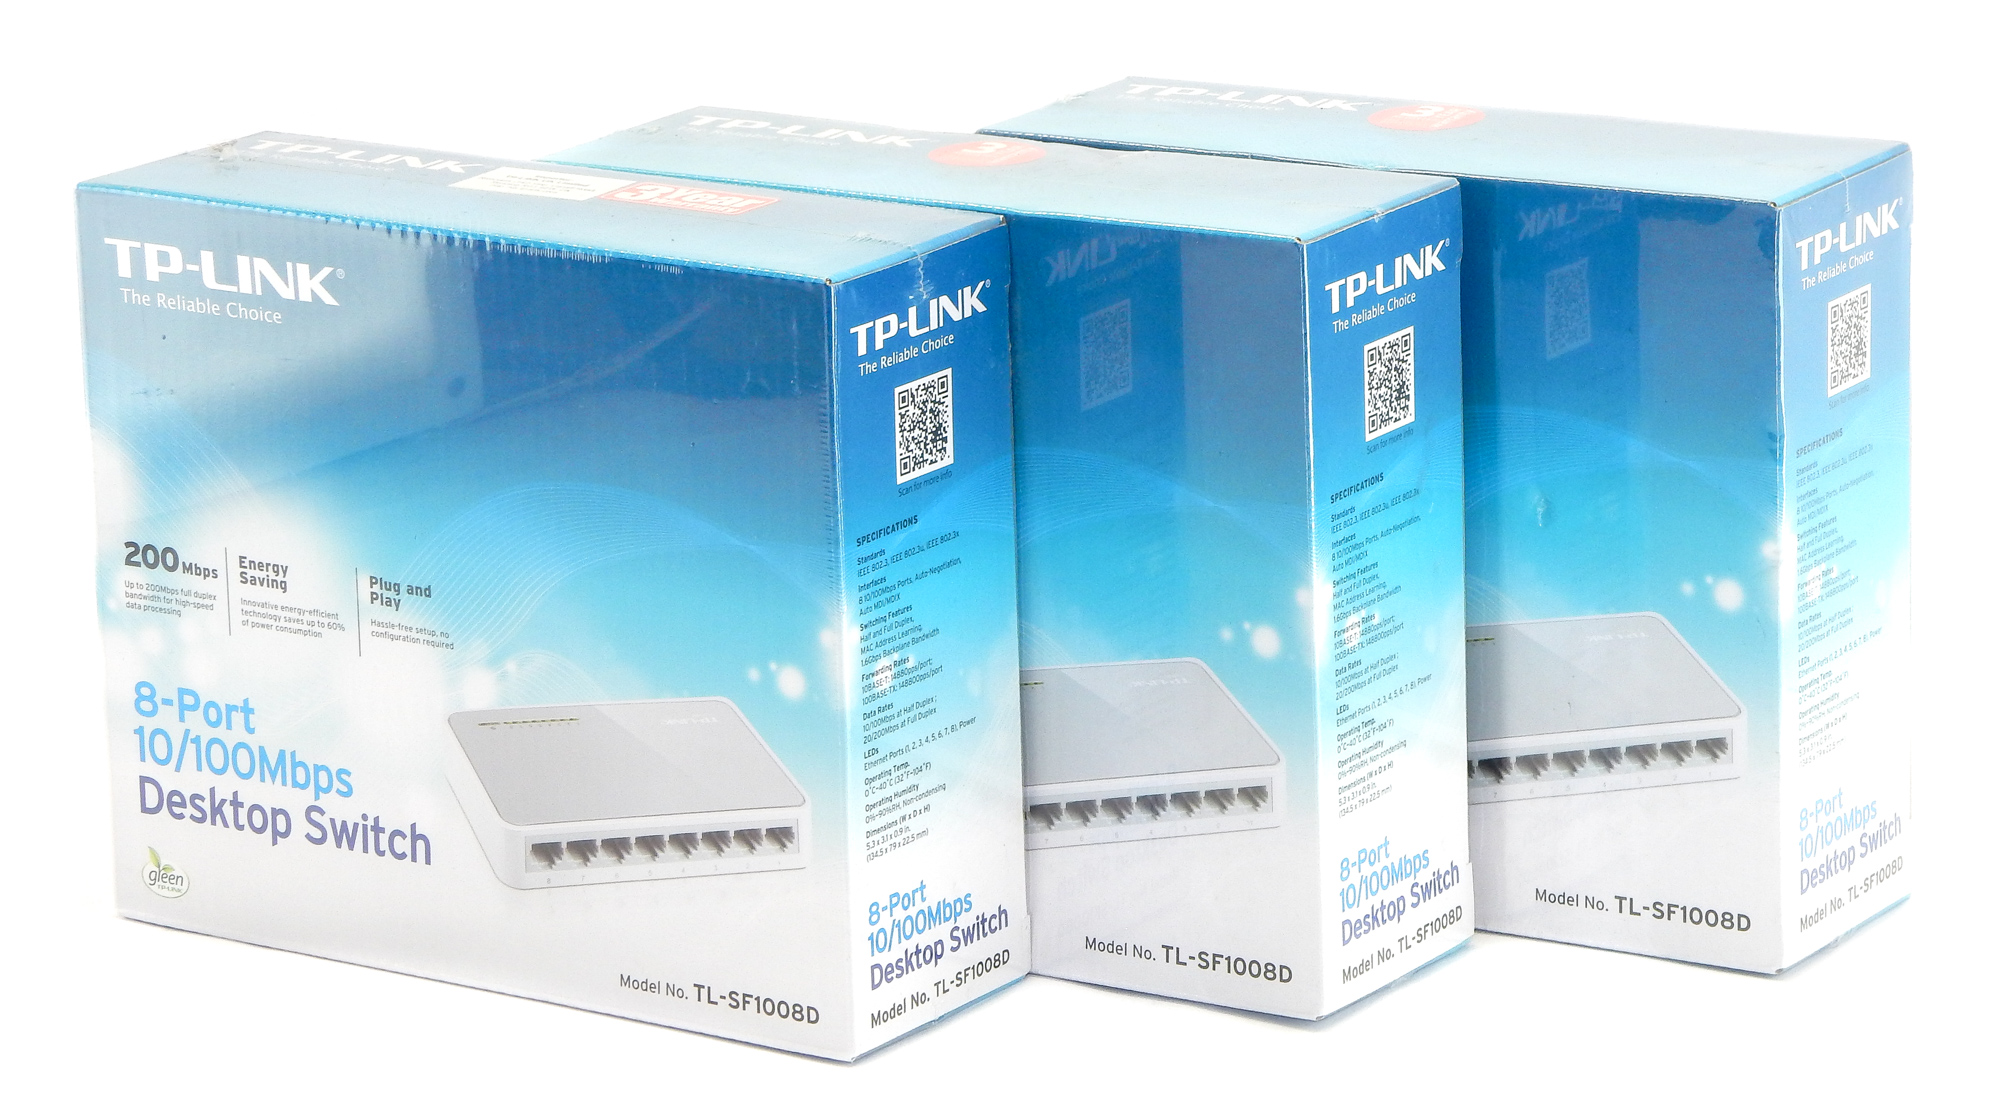 3x NEW TP-Link TL-SF1008D 8-Port Fast Ethernet Switch